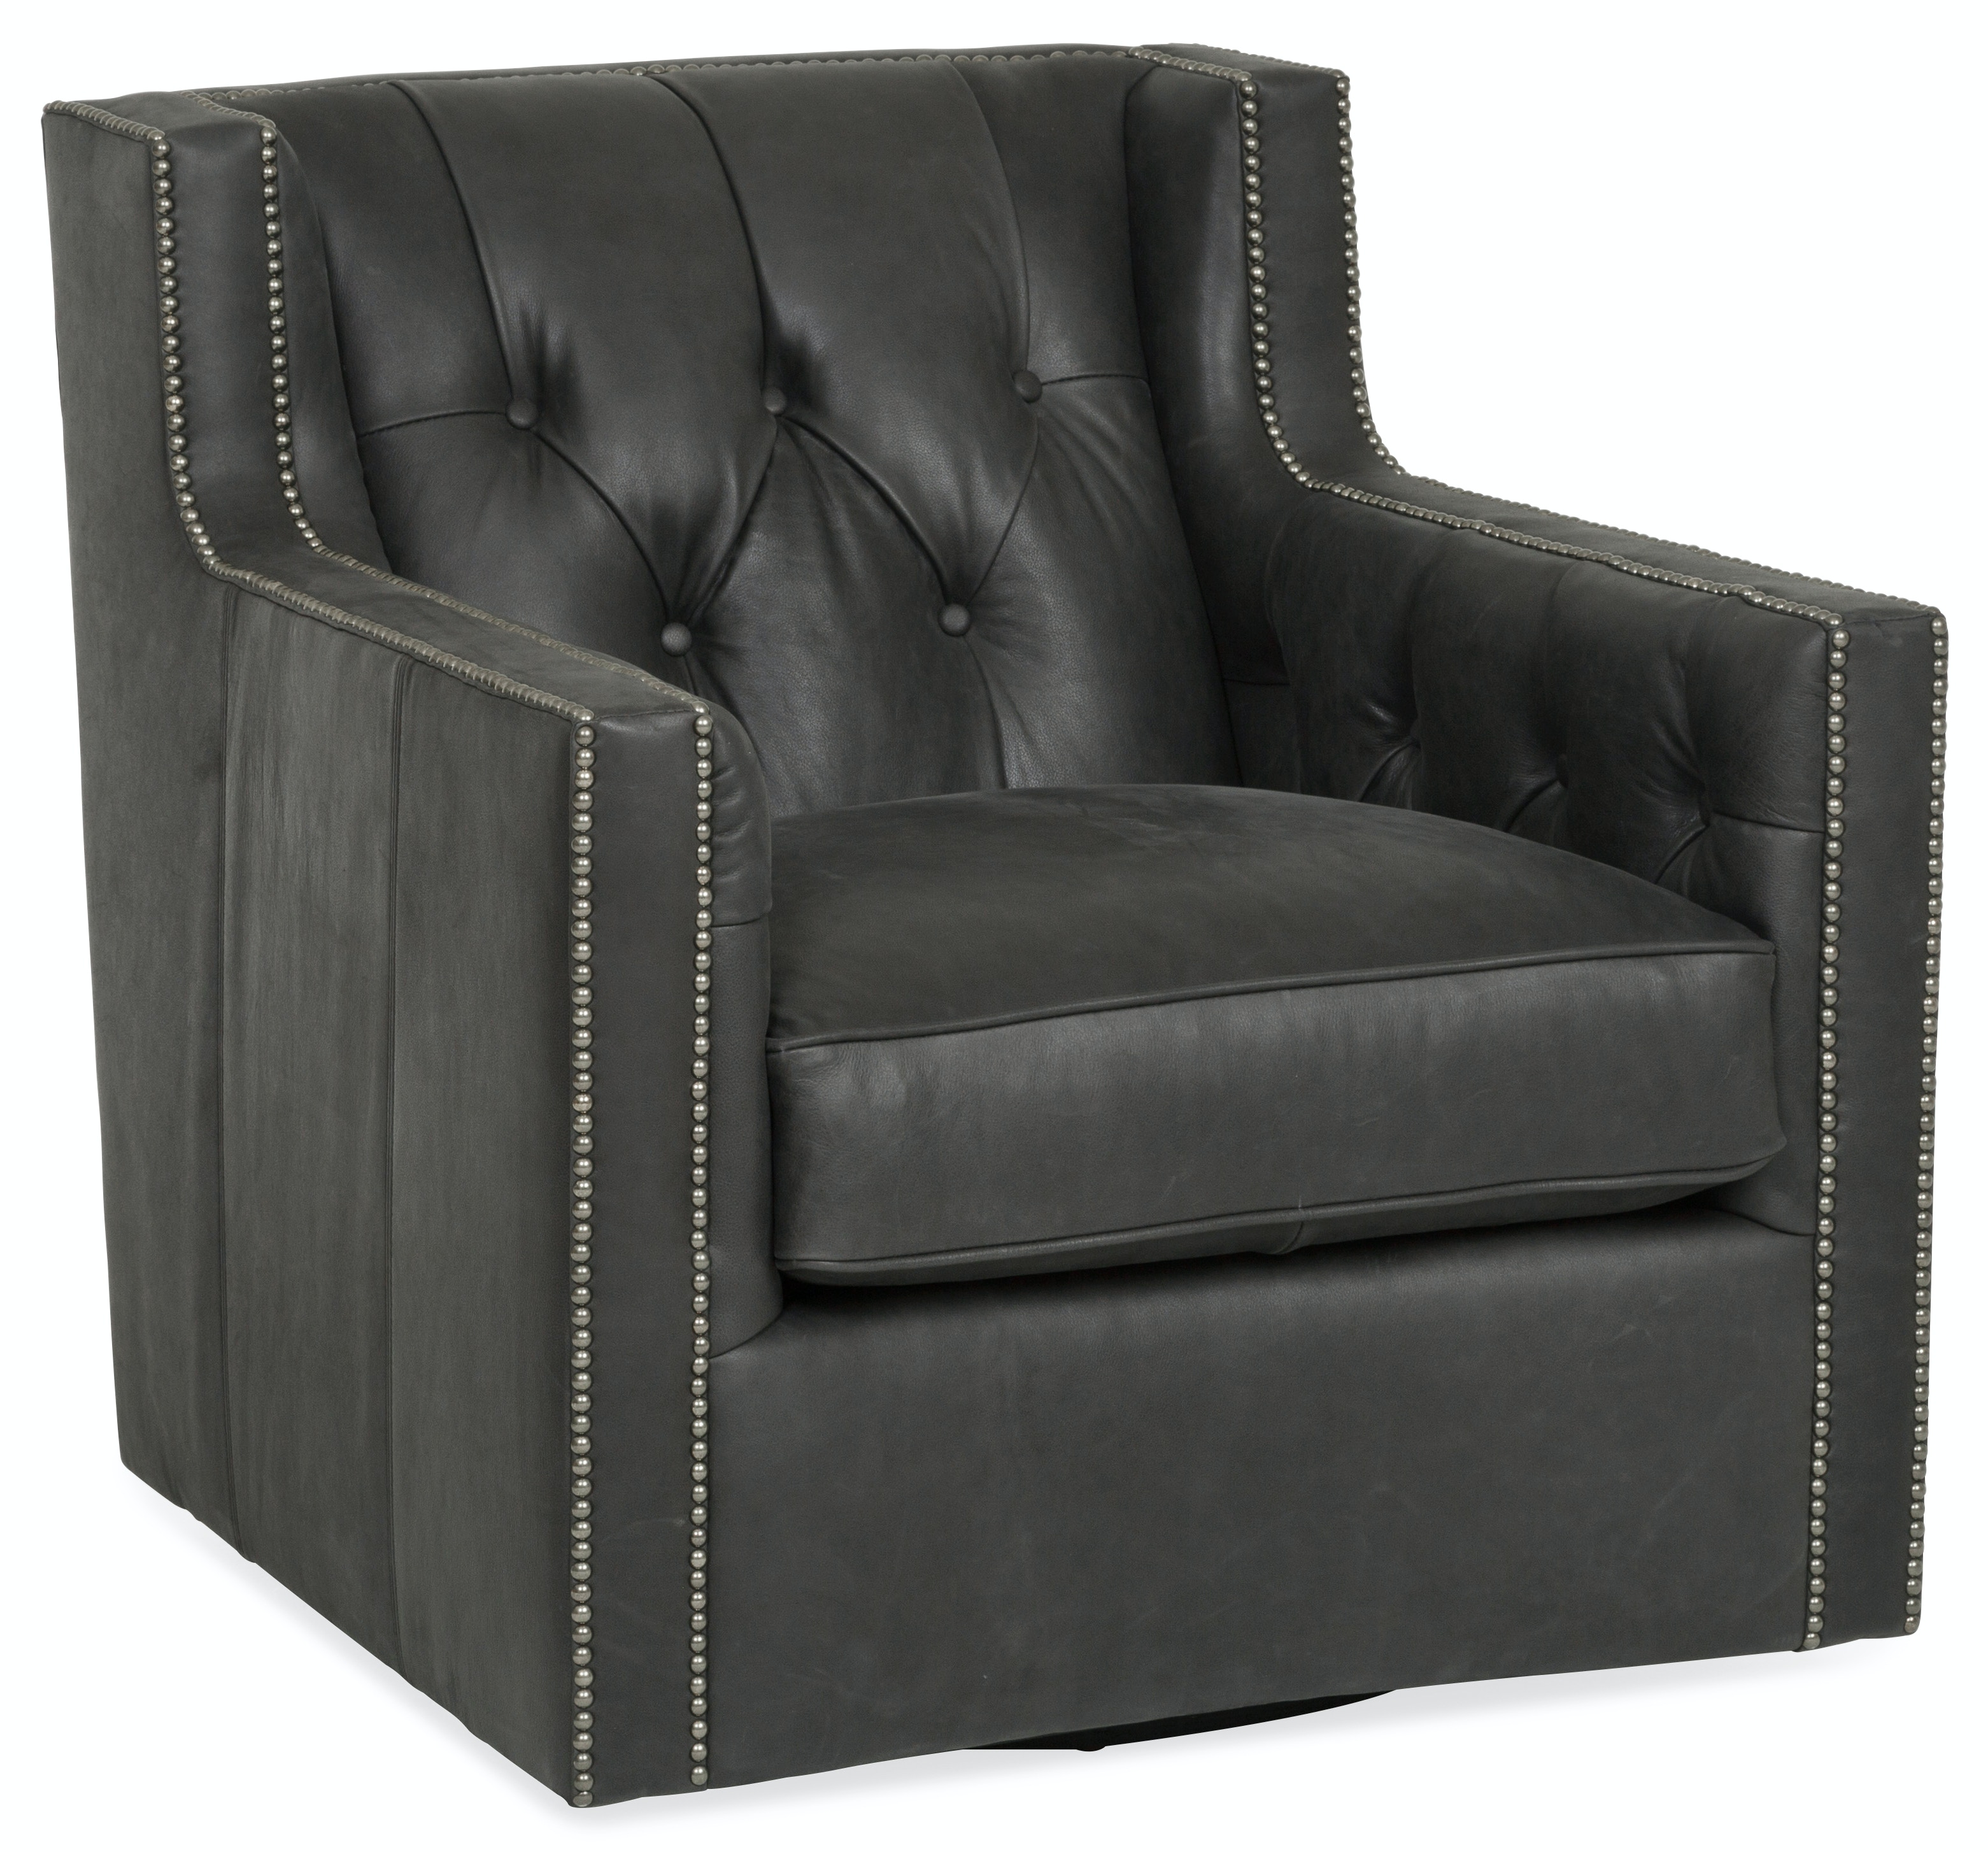 Exceptionnel Candace Leather Swivel Chair ST:490445